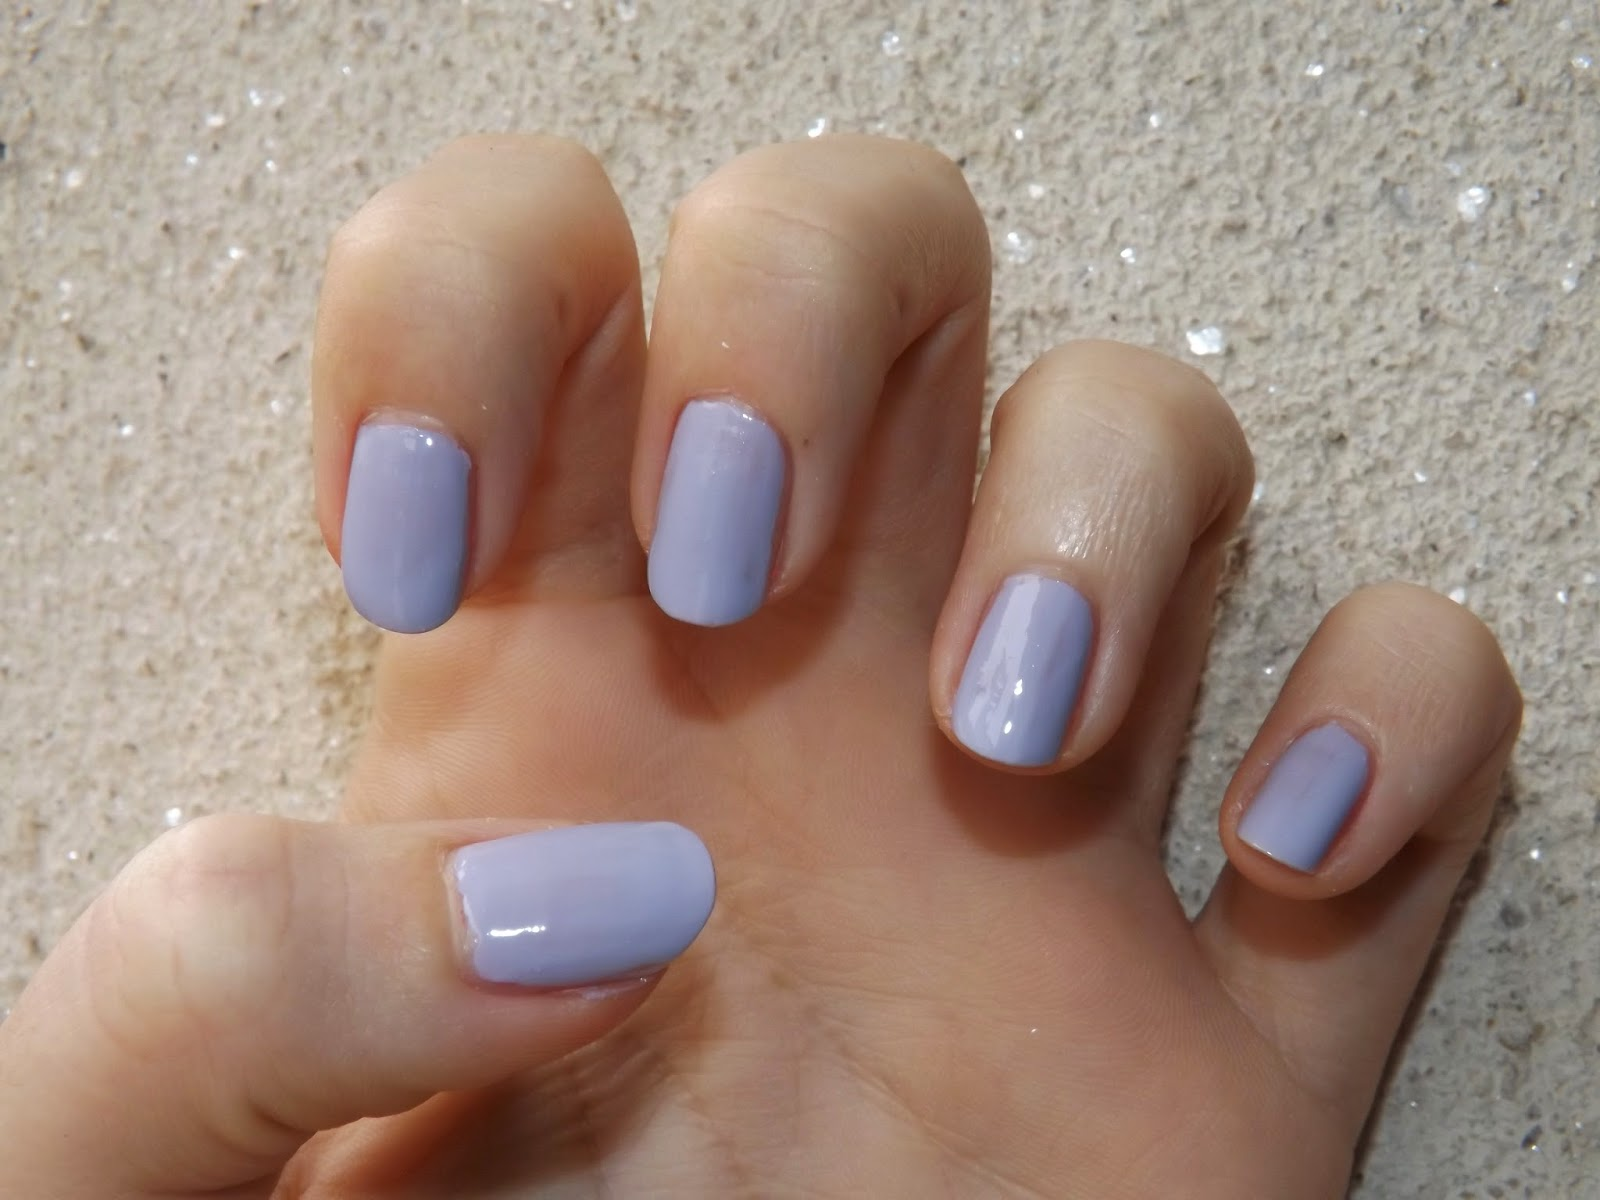 Ongles lilas - Faux ongles rose pale ...